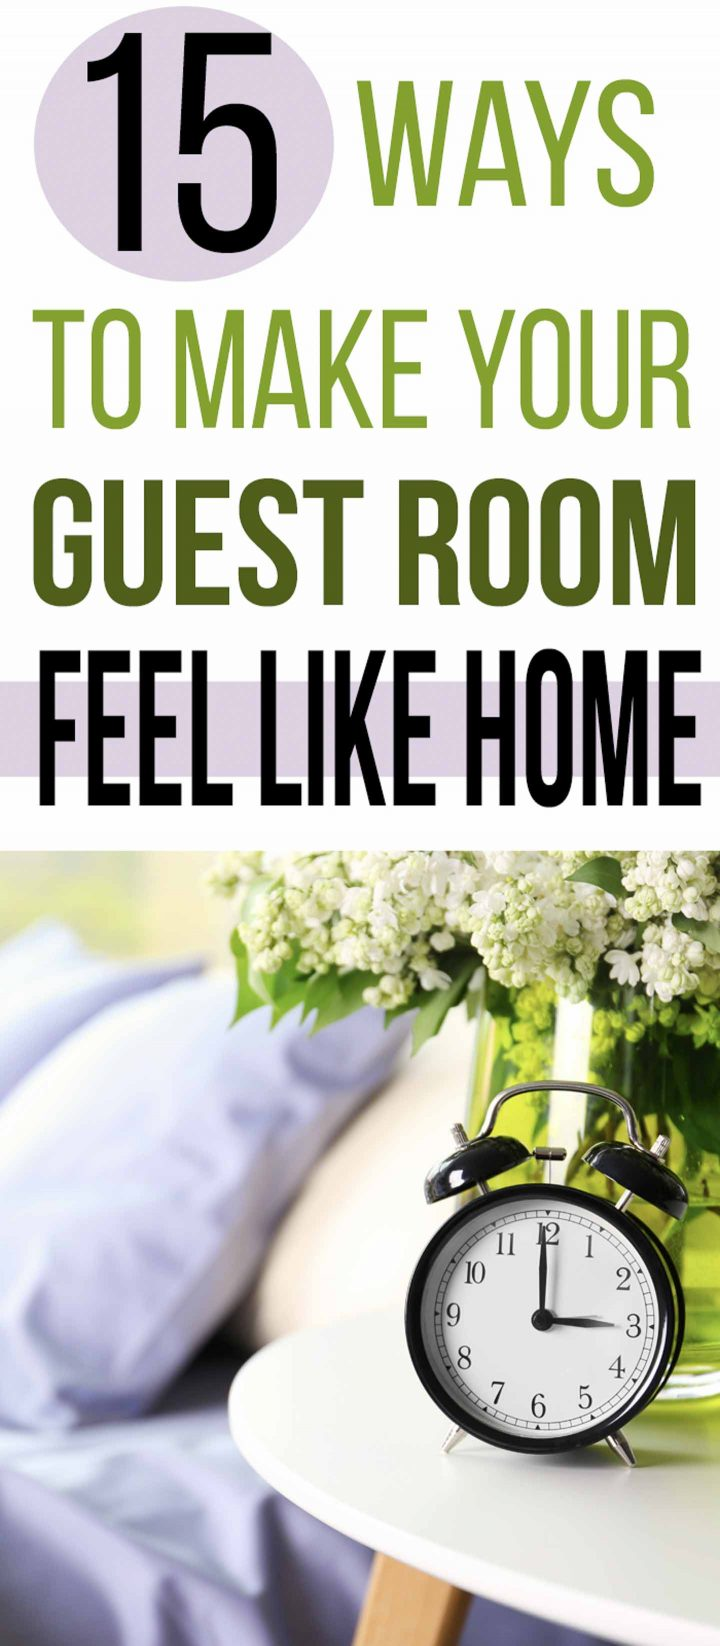 15 ways to make your guest room feel like home